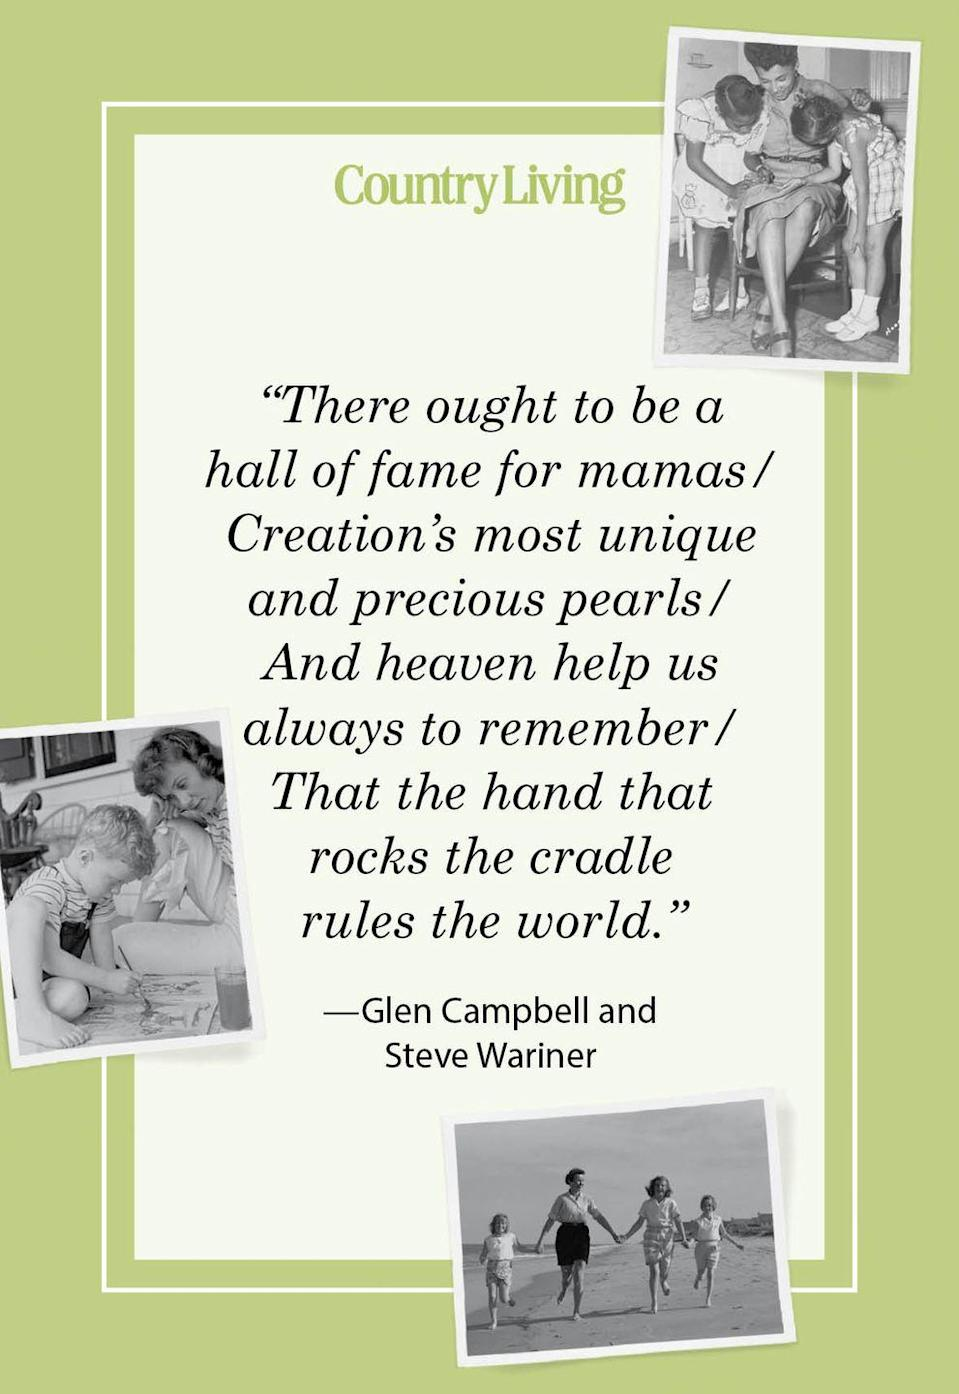 "<p>""There ought to be a hall of fame for mamas/<br>Creation's most unique and precious pearls/<br>And heaven help us always to remember/<br>That the hand that rocks the cradle rules the world.""</p>"